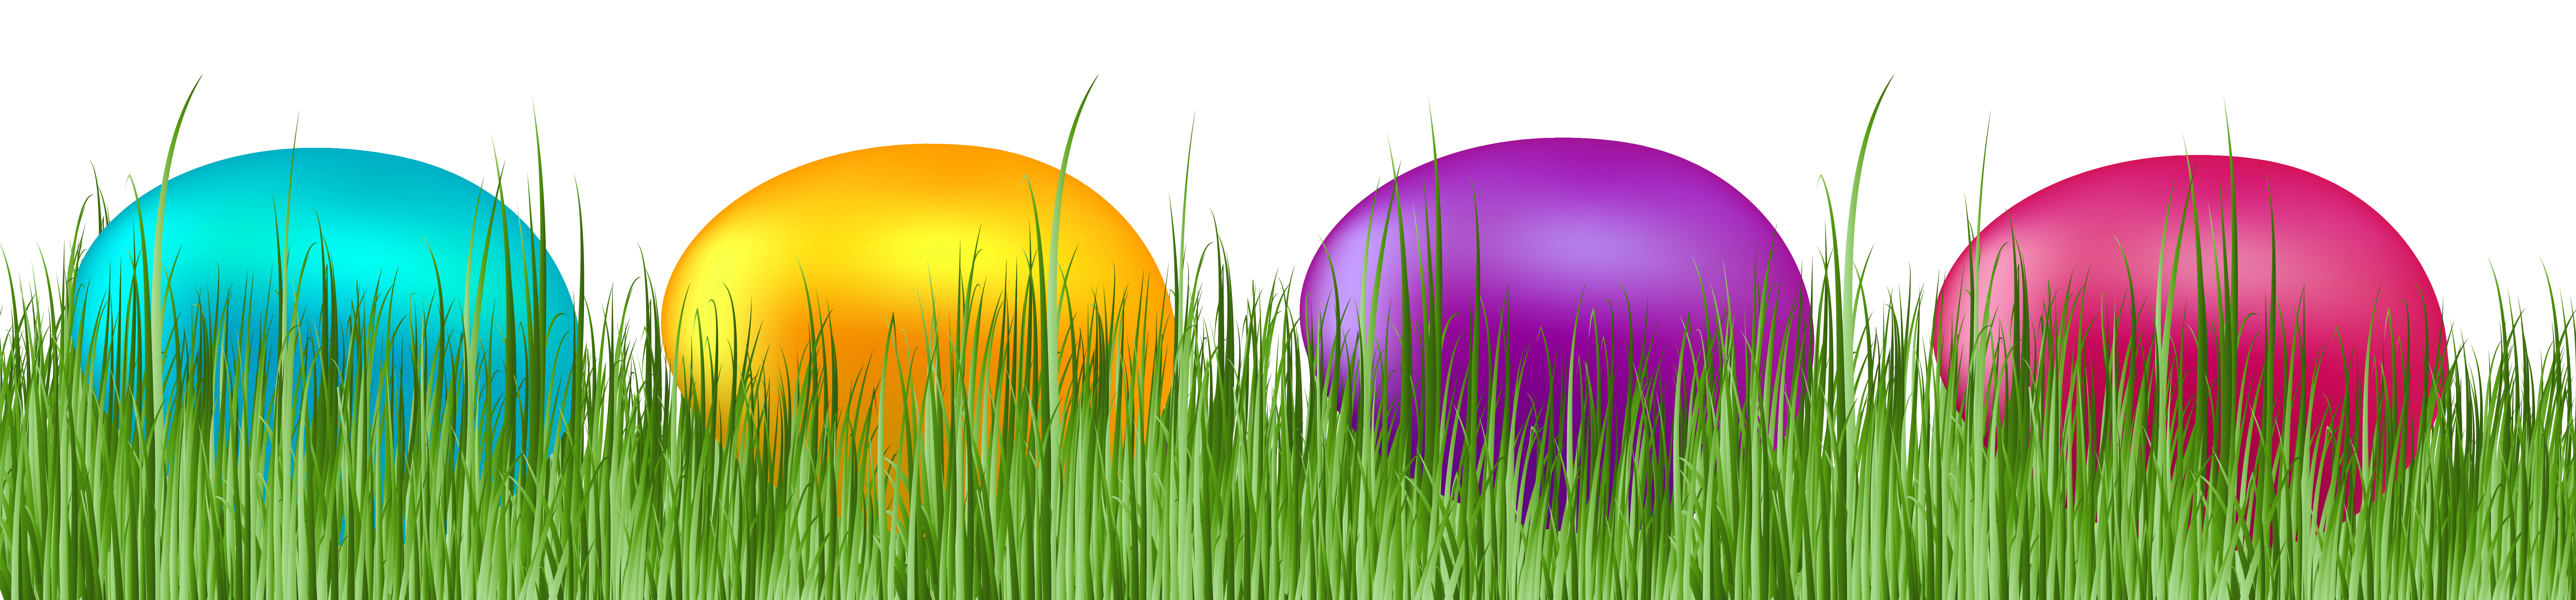 Free Easter Grass Cliparts, Download Free Clip Art, Free Clip Art on.